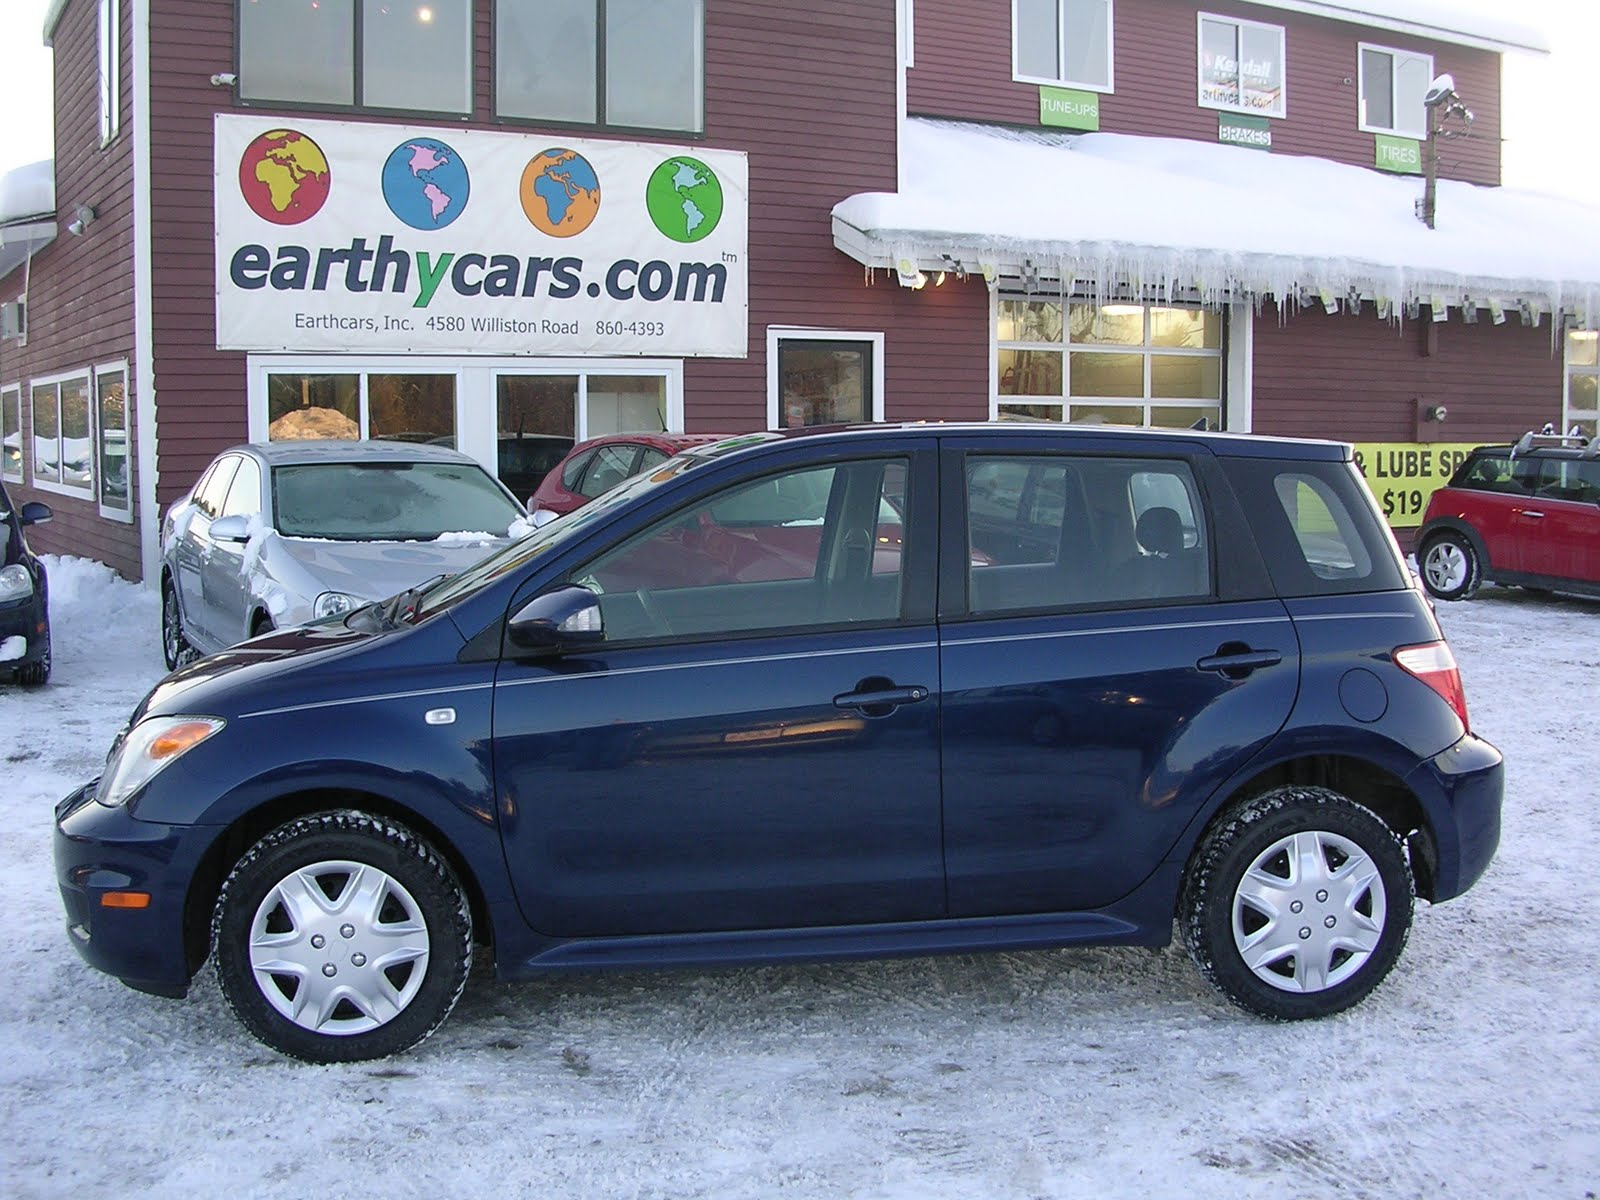 Beautiful EARTHY CAR OF THE WEEK: 2006 Scion XA   Blue